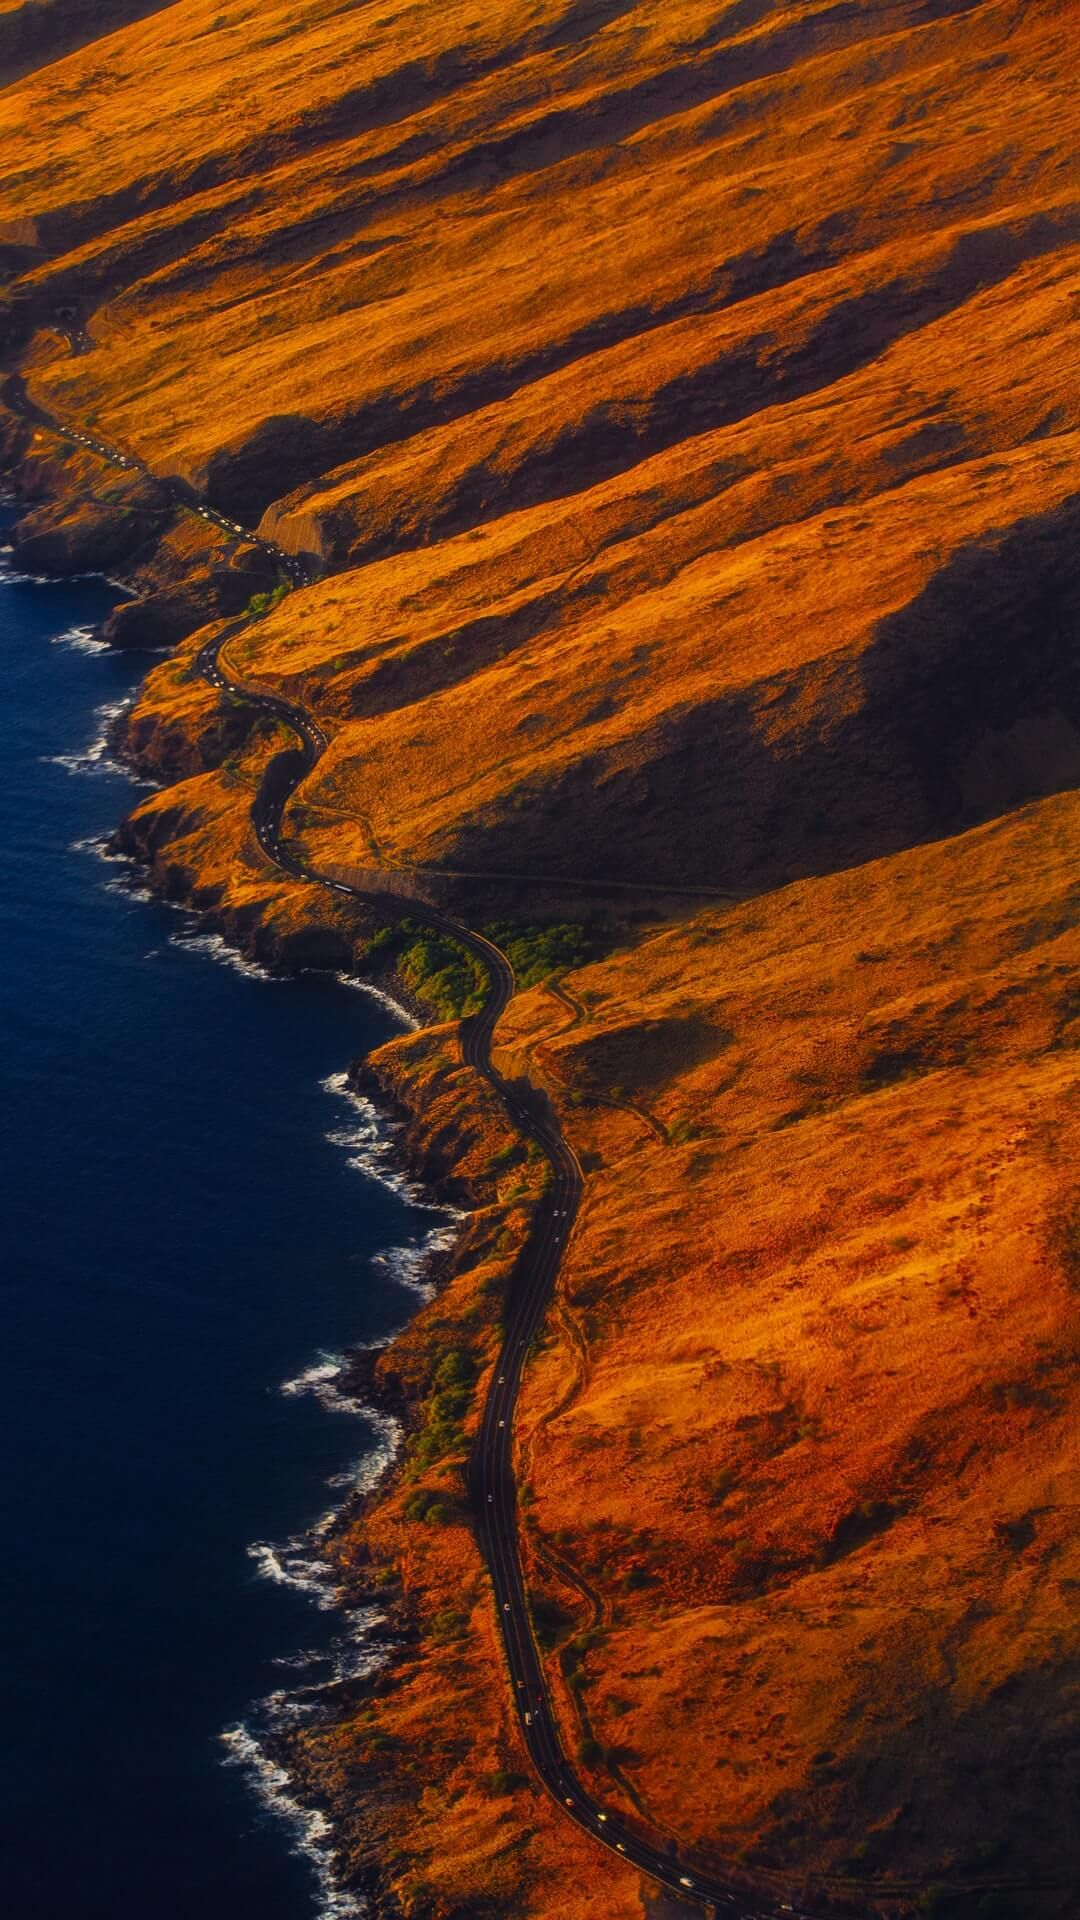 30 Best Hd Wallpaper For Phone Android Aerial Photography Nature Wallpaper Lock Screen Backgrounds